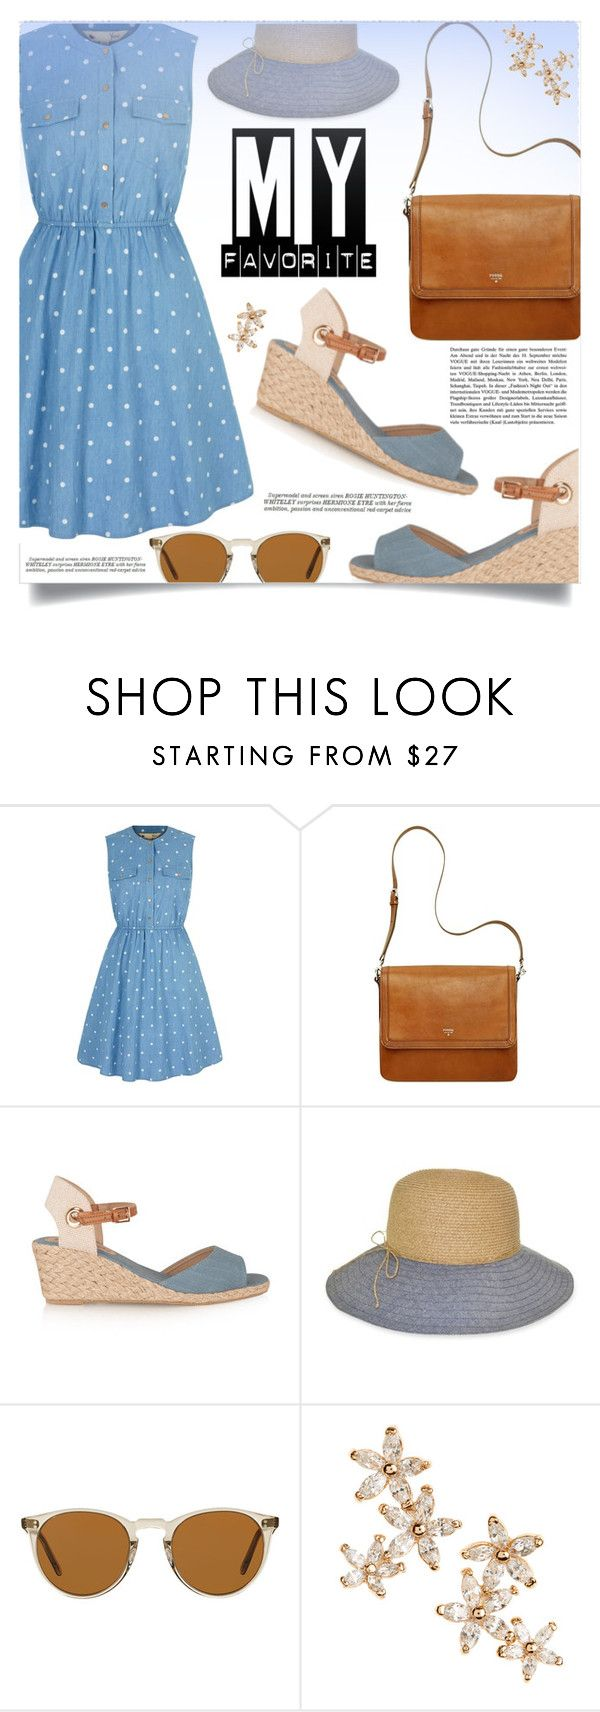 """""""My Favorite!"""" by aida-banjic ❤ liked on Polyvore featuring Yumi, Nine West, Oliver Peoples, Whiteley, Bonheur, Spring, myfavorite and polyvorecontest"""